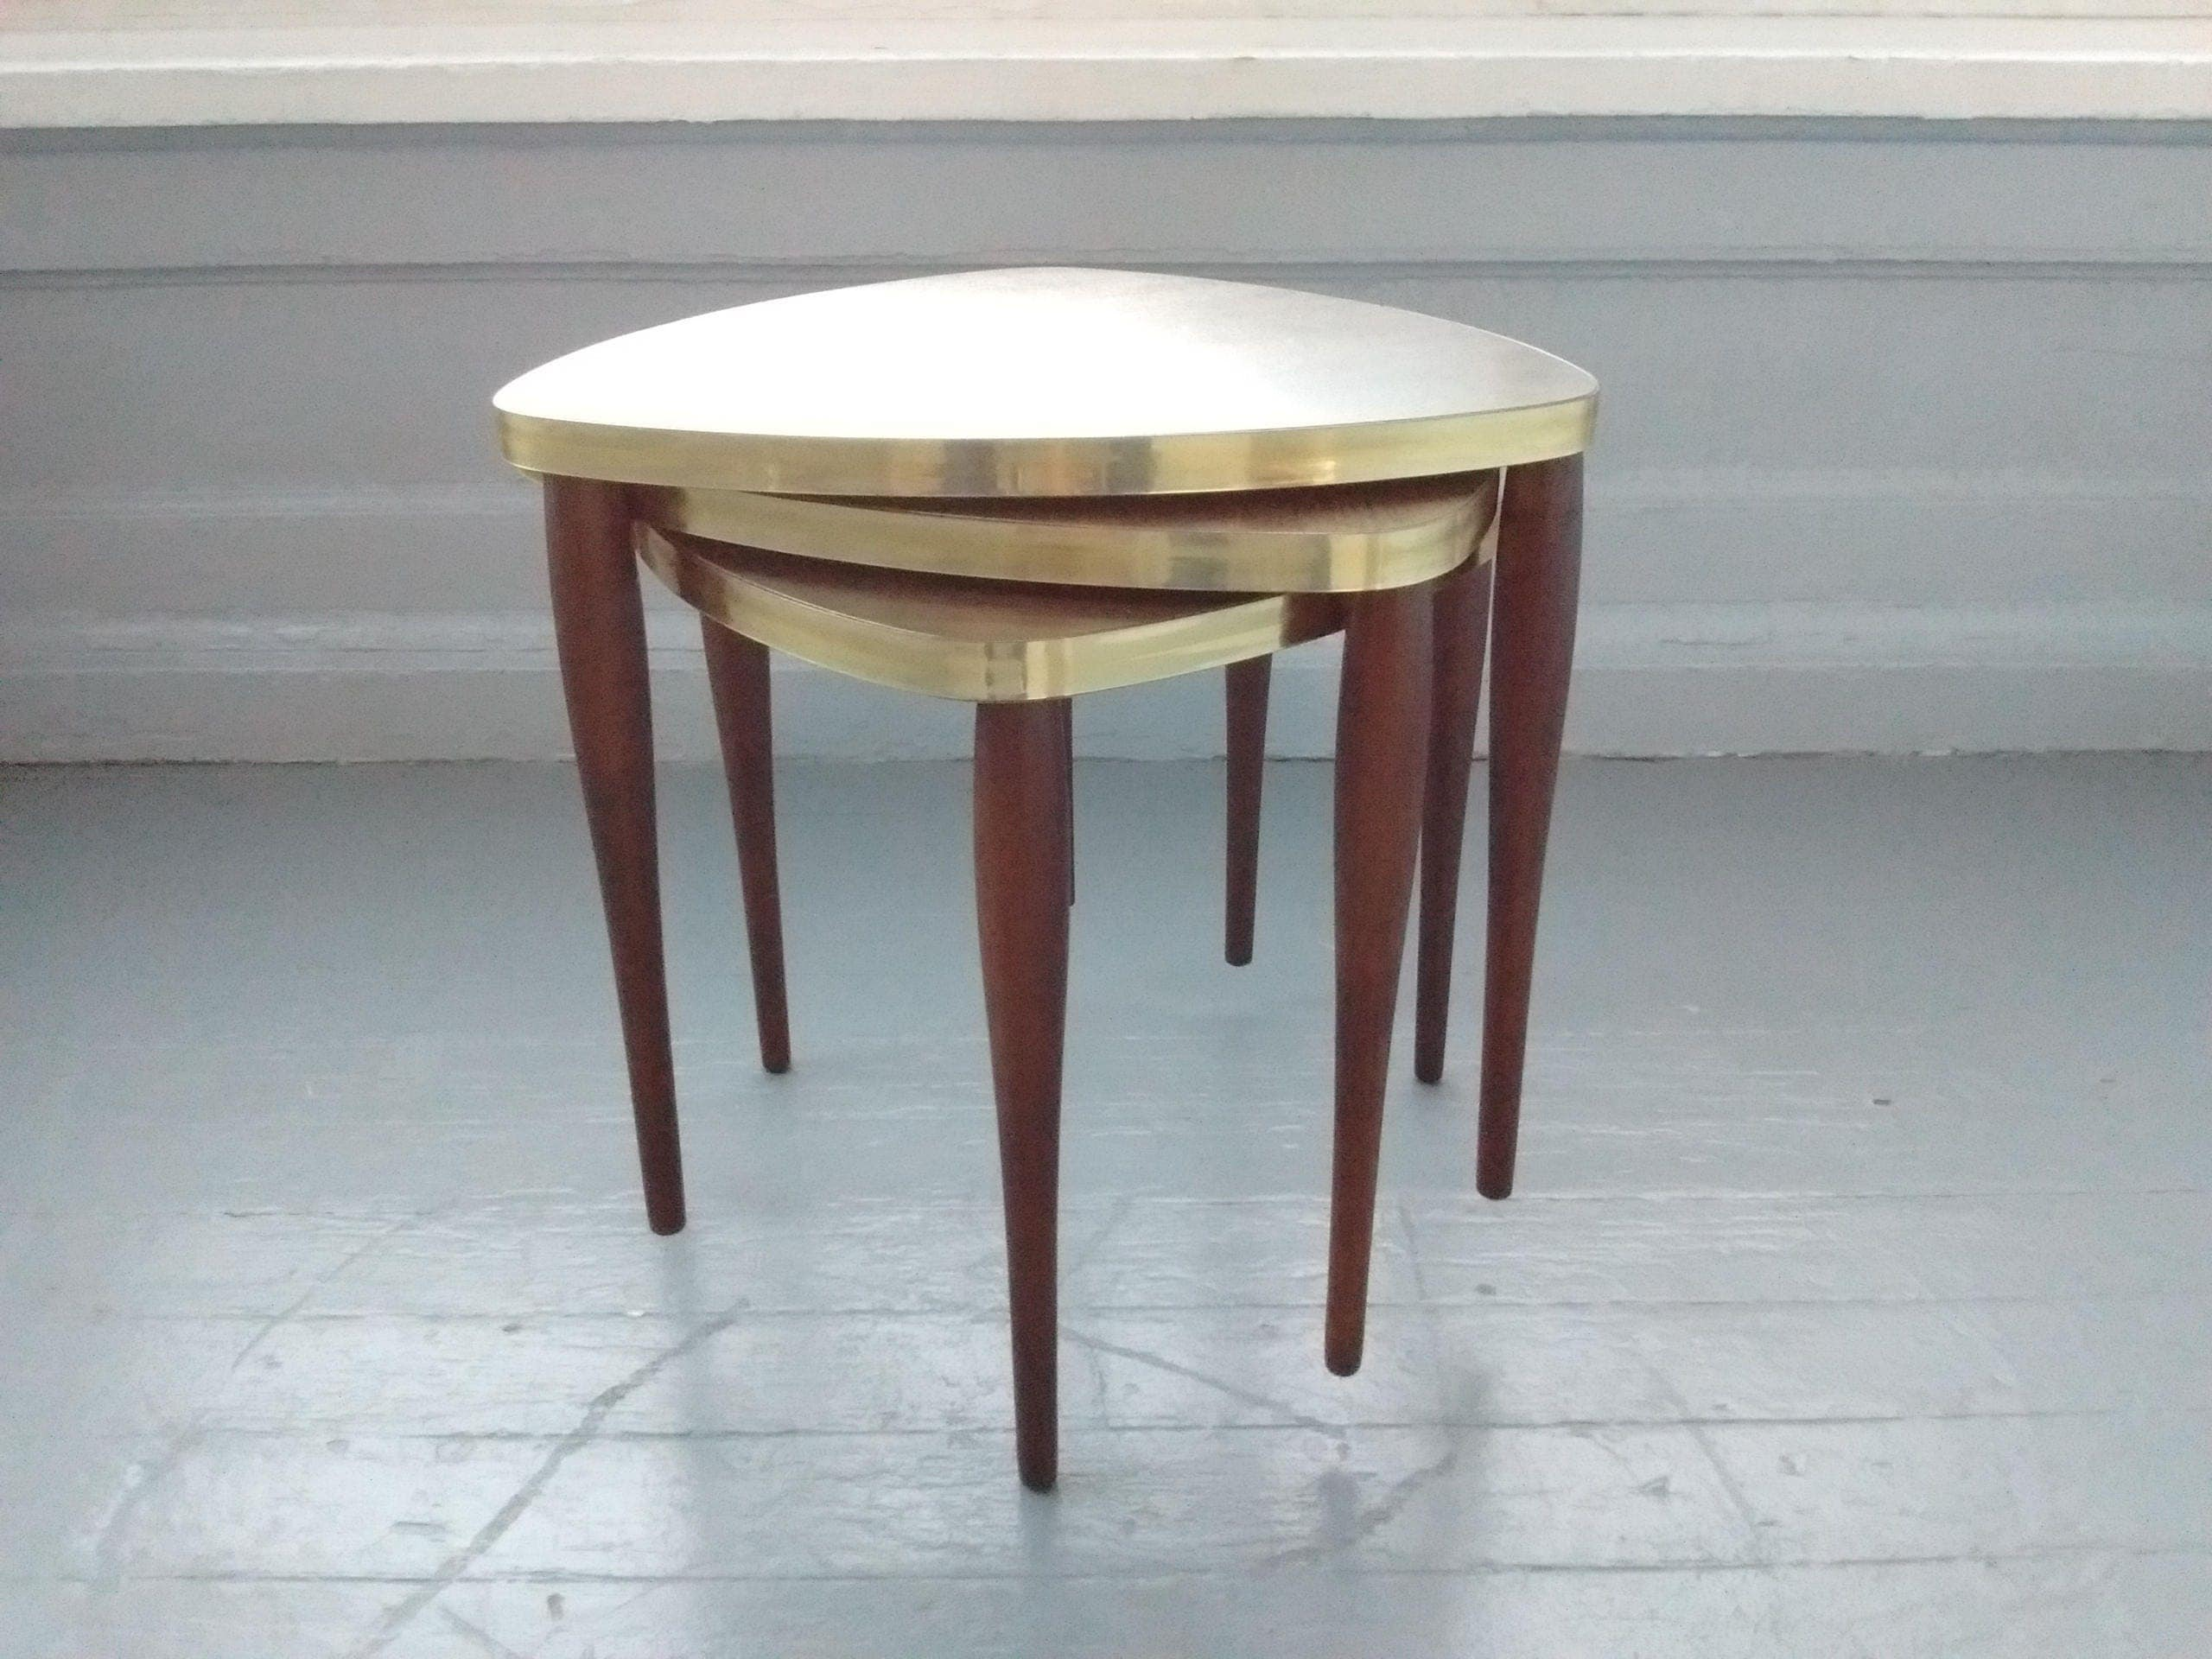 Sale Vintage Stacking Tables Triangle Guitar Pic Mid Century Danish Modern End Table